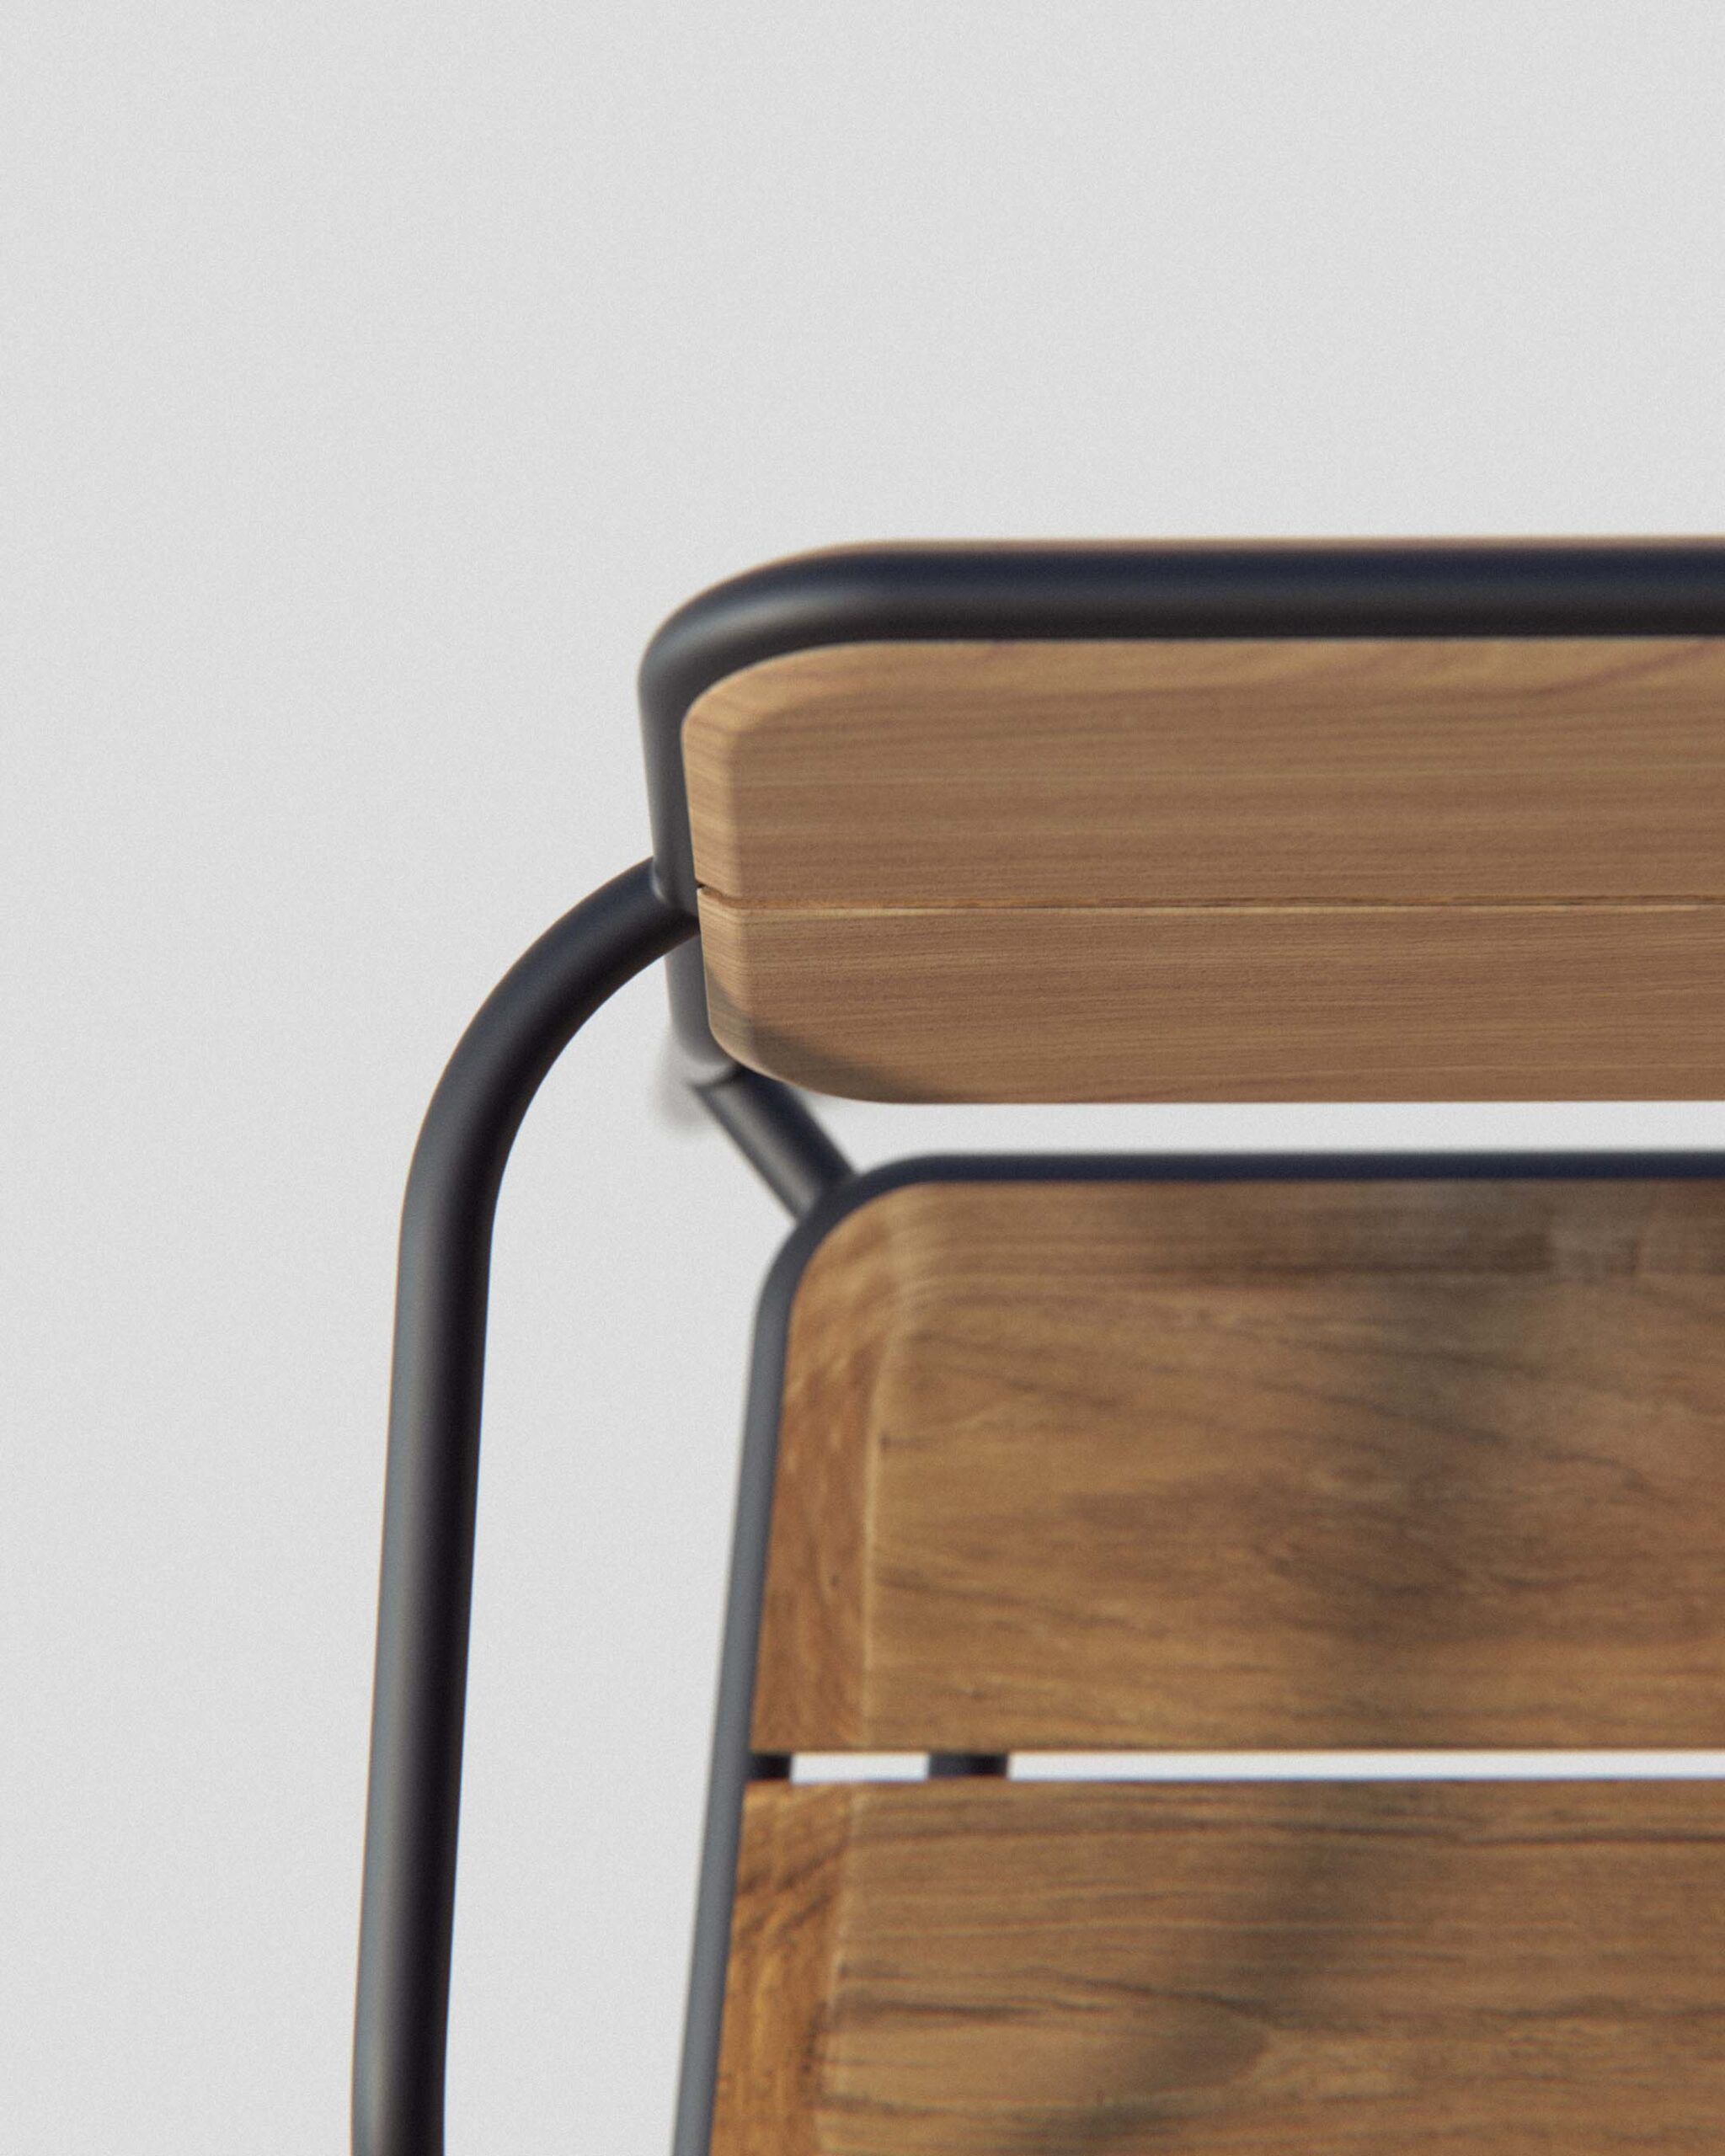 Andreas Bhend Industrial Design Studio TEAK Chair 02